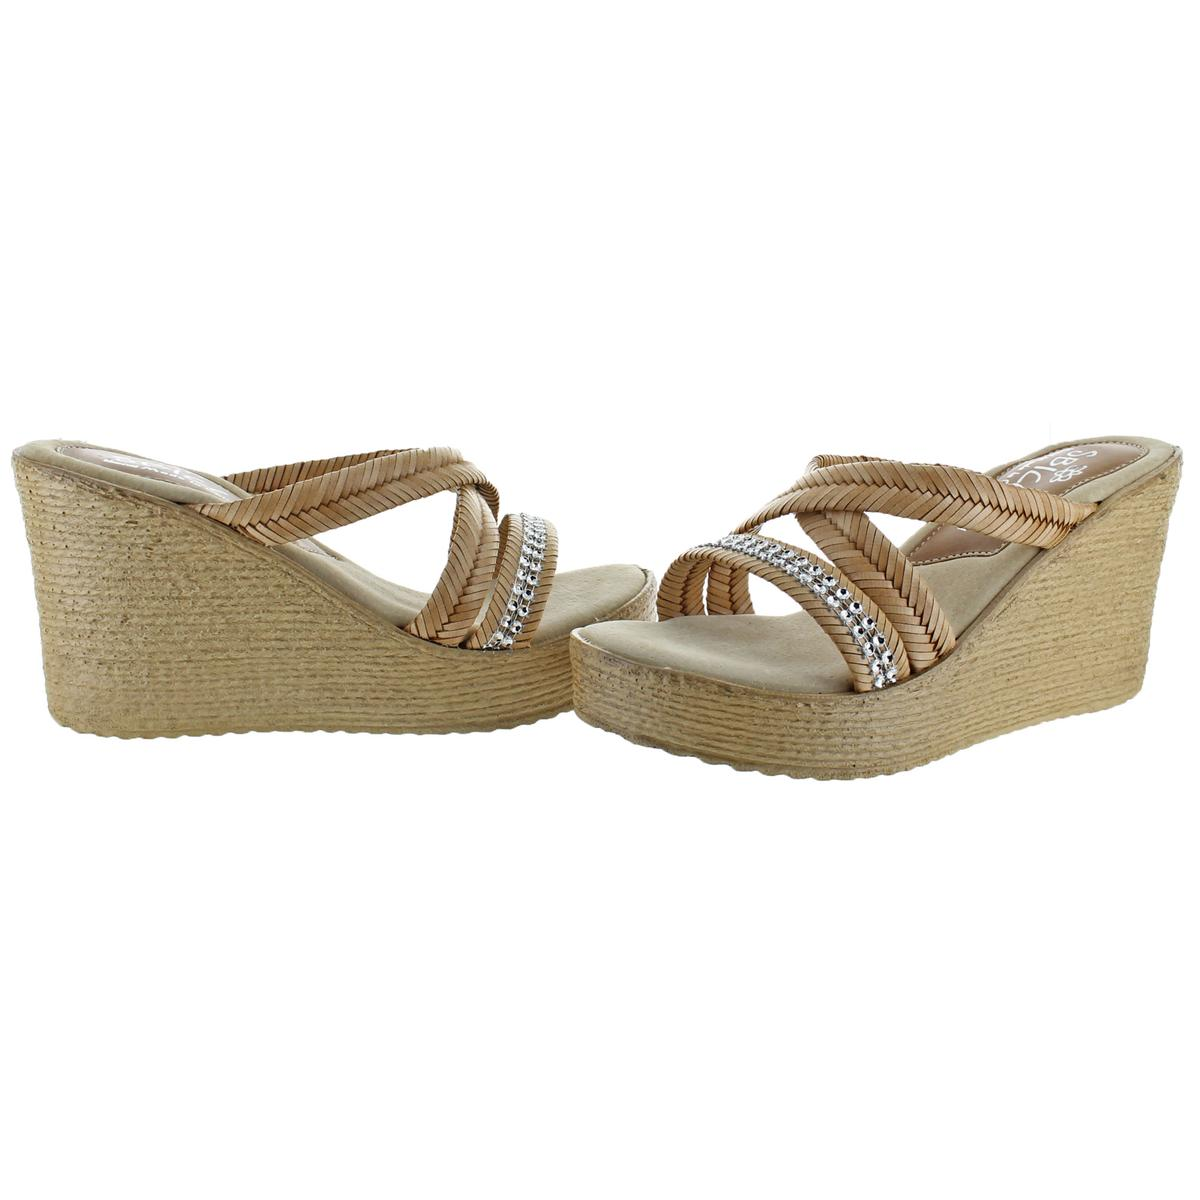 Sbicca-Zennia-Women-039-s-Jute-Slip-On-Chevron-Braided-Wedge-Sandals-Shoes thumbnail 6